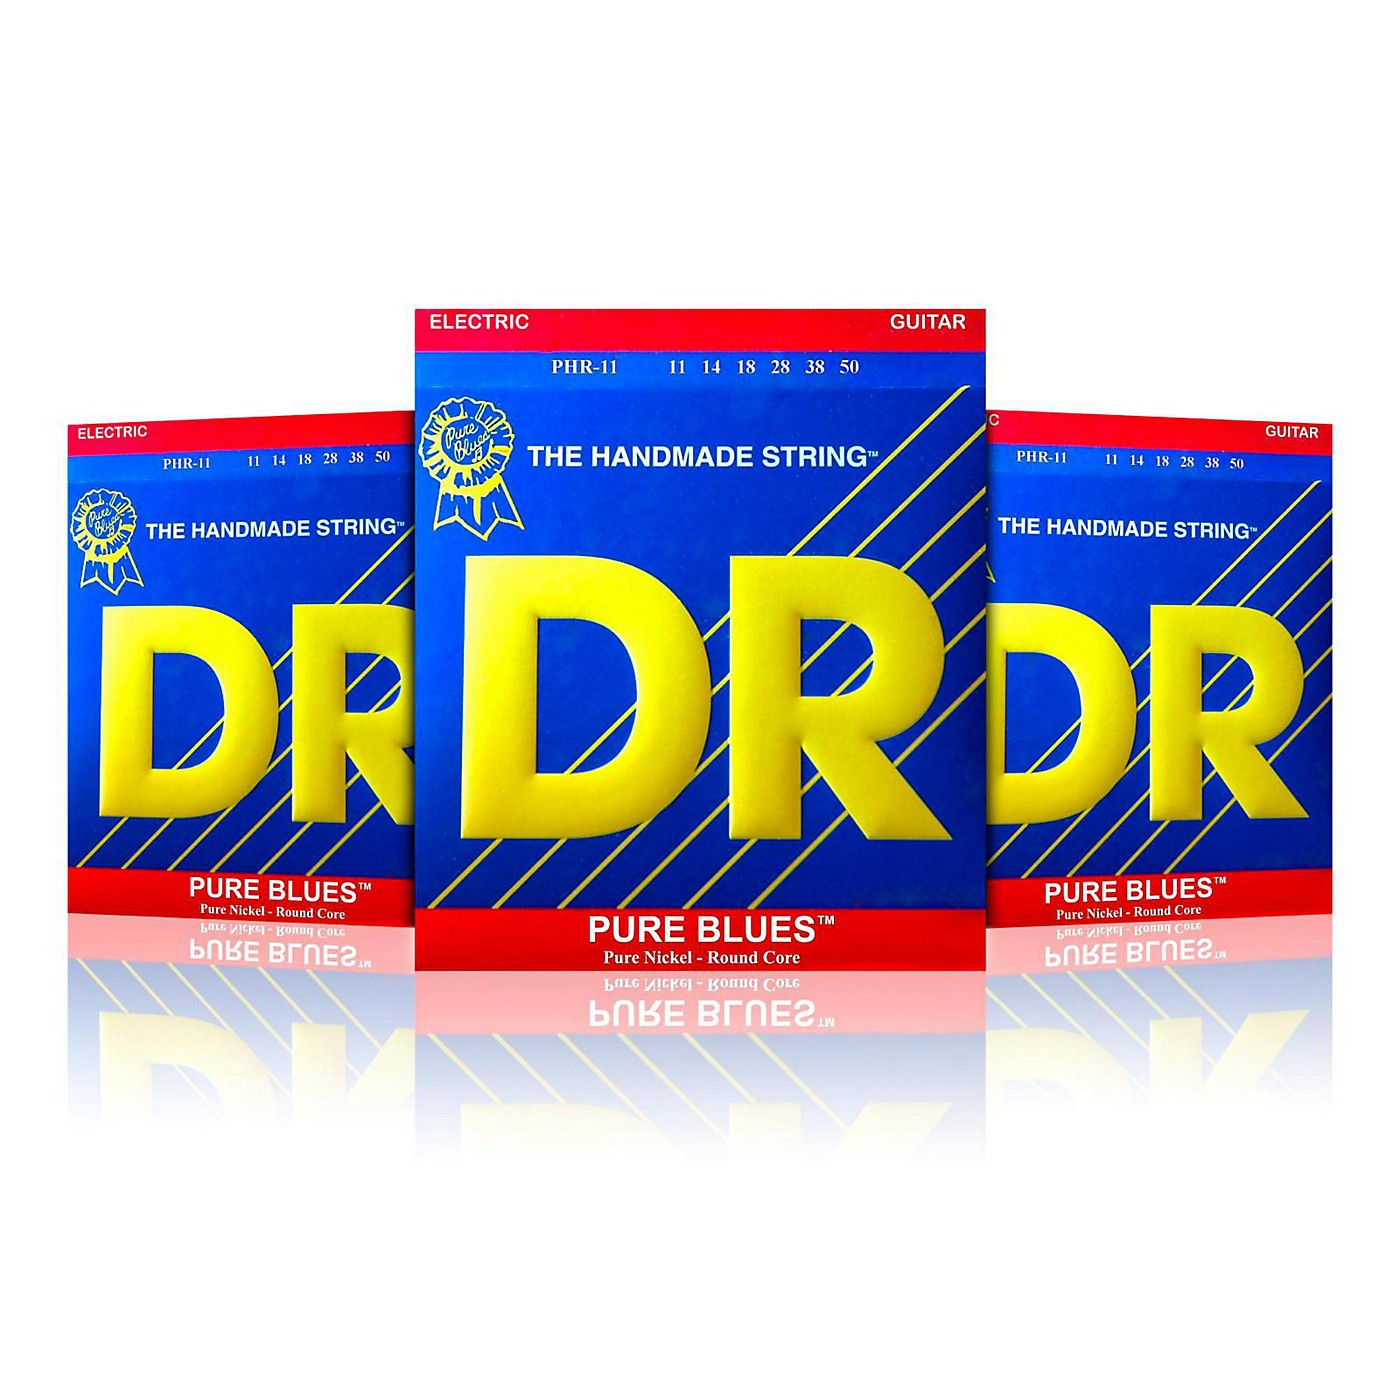 DR Strings PHR-11 Pure Blues Heavy Electric Strings - Buy 2, Get 1 Free thumbnail